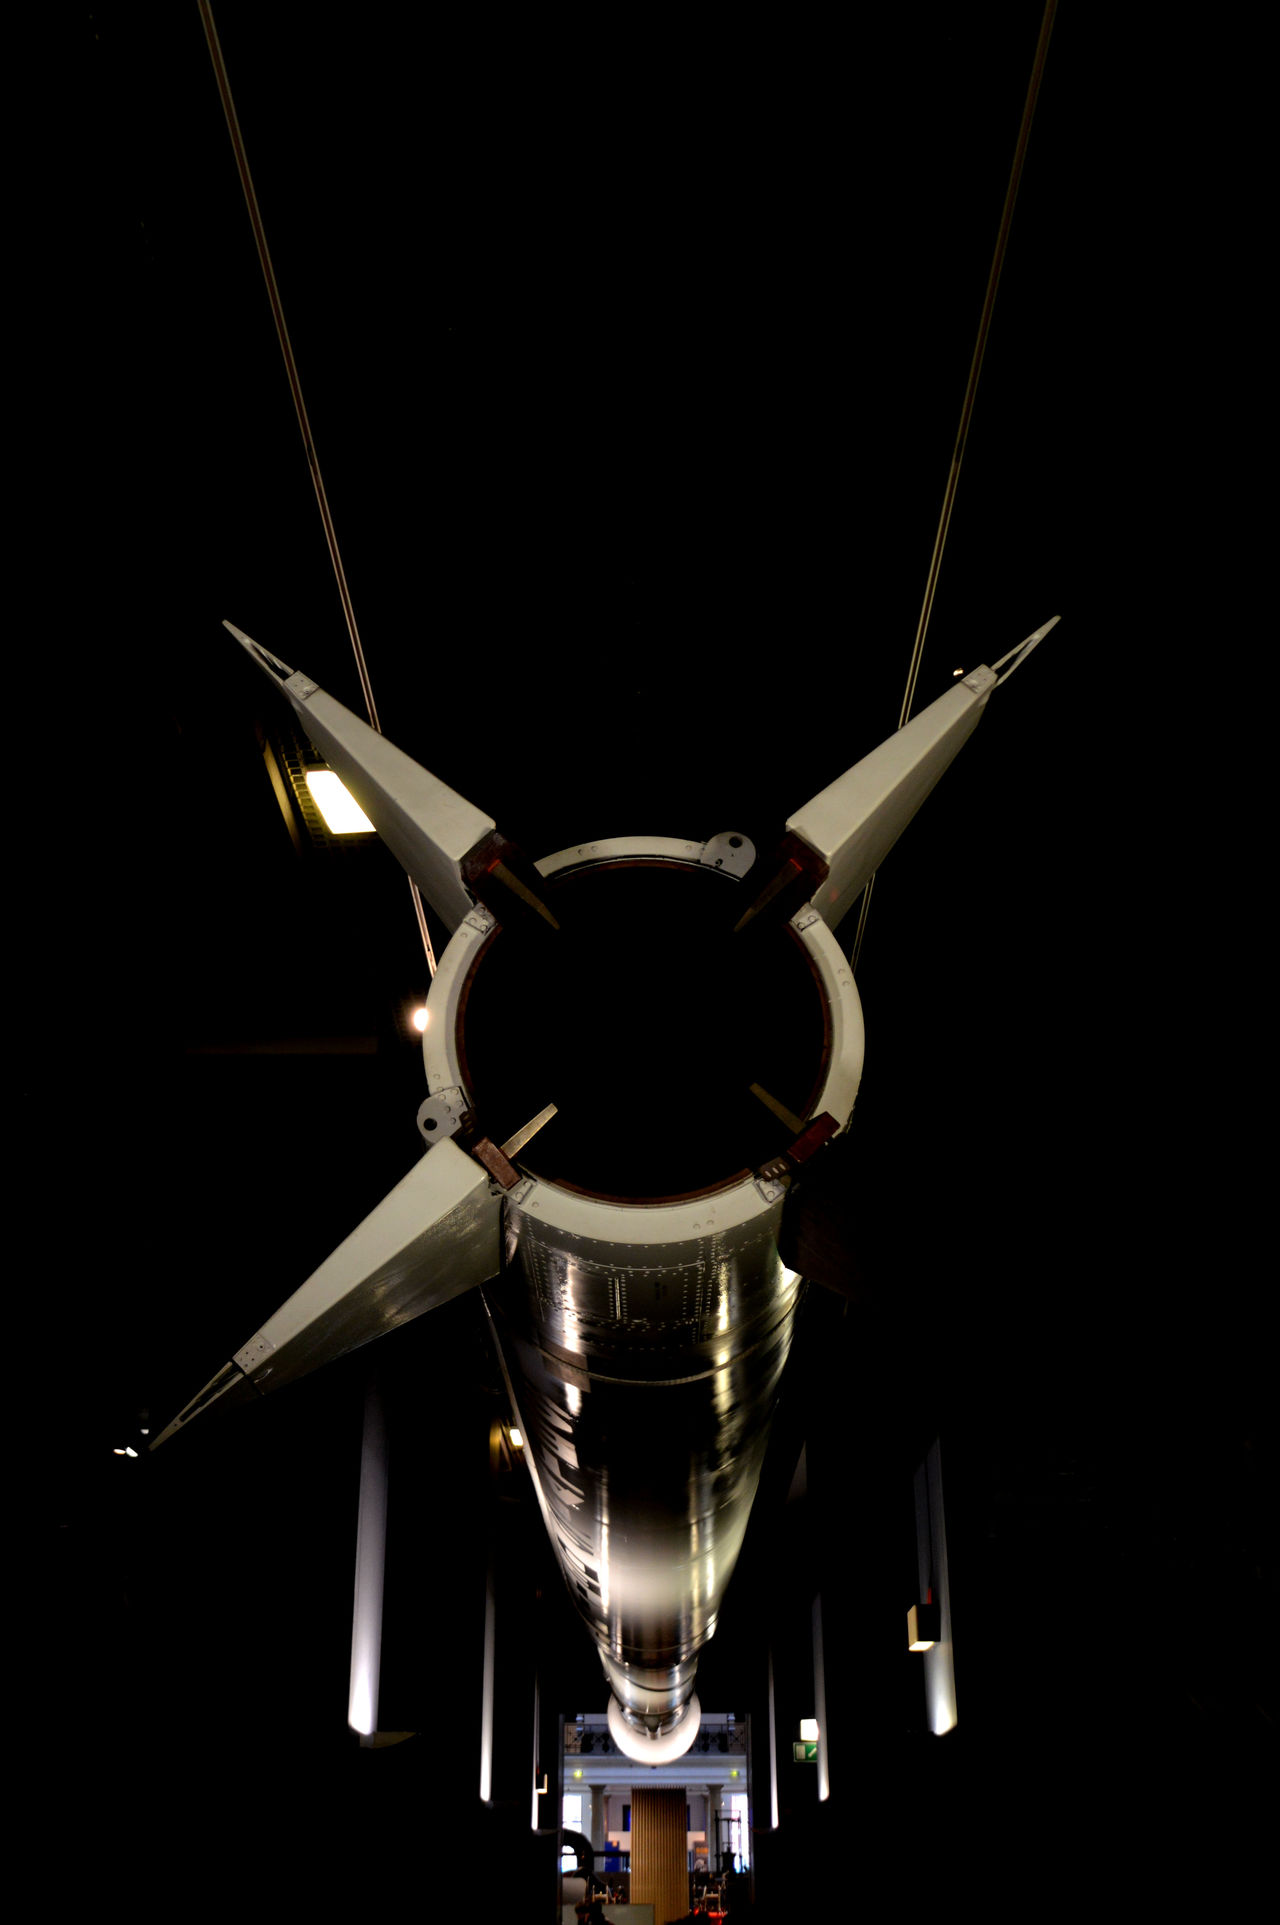 Aerospace Industry Black Background Close-up Electricity  Industry Innovation No People Rocket Science ScienceMuseum Shiny Technology